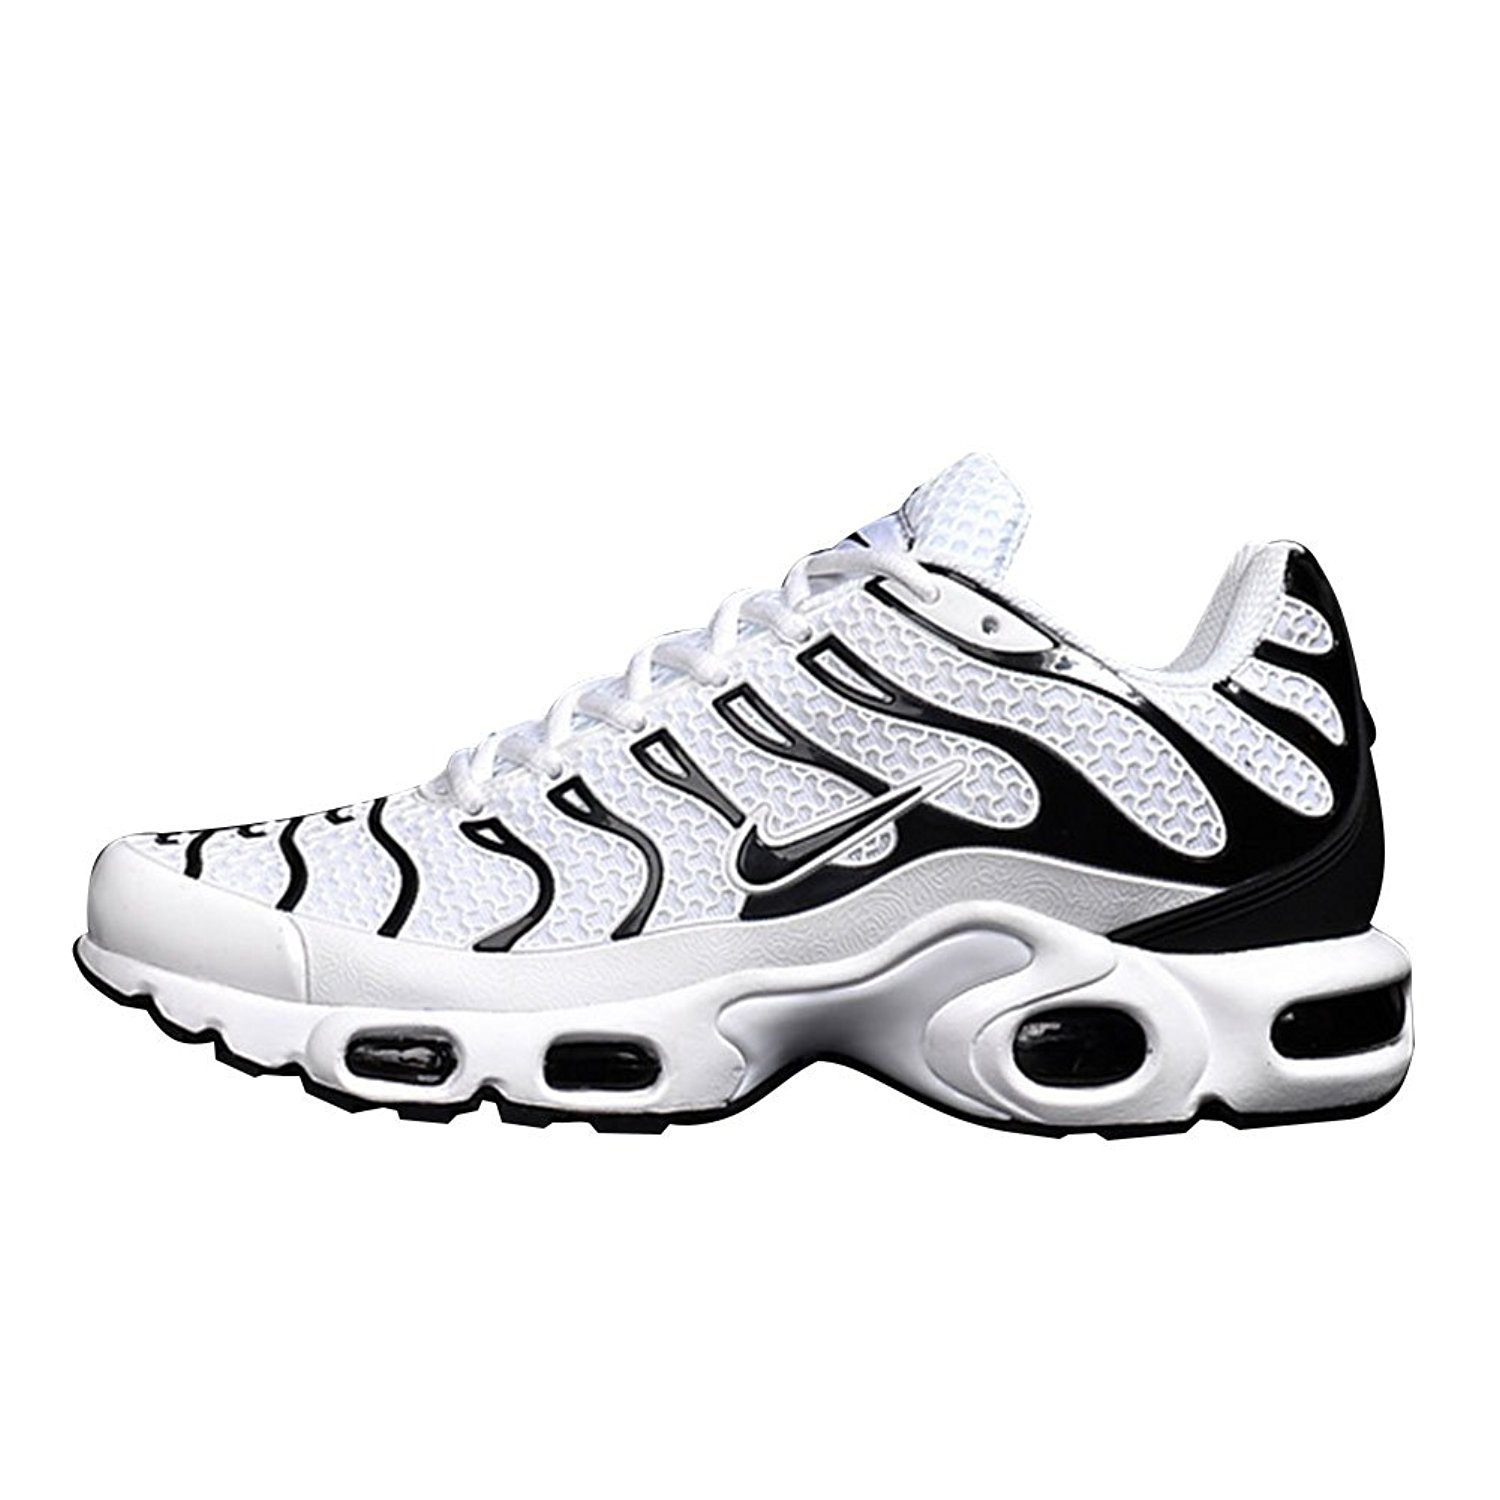 buy online ab2a4 af37e Very Goods | Amazon.com | Nike Men's Air Max TN Running ...